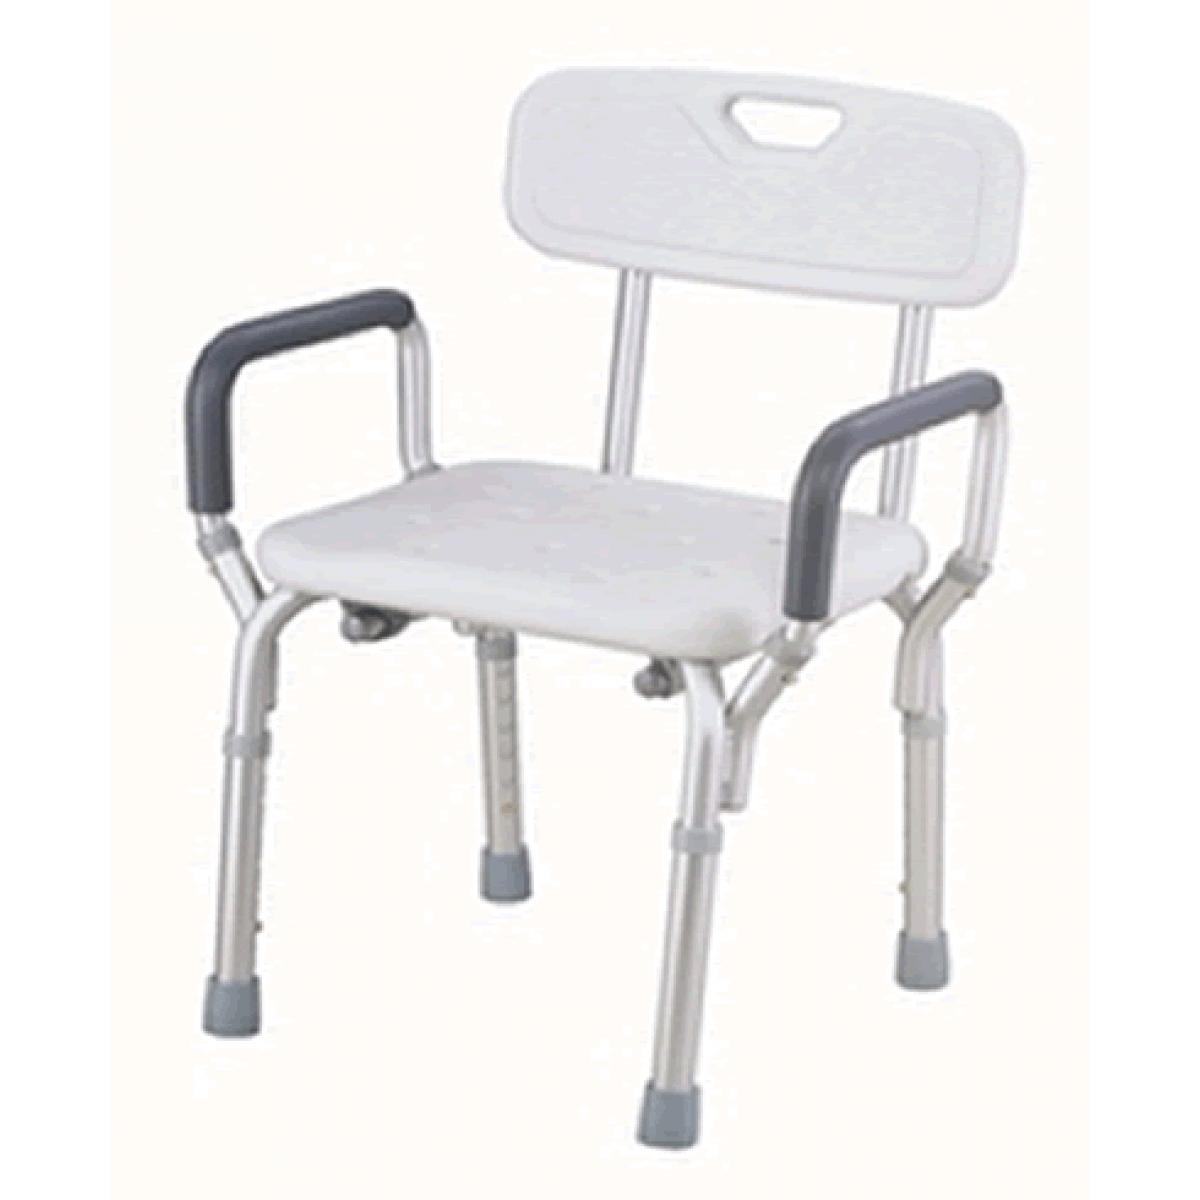 shower tub bench chair adjustable height swivel merits bath with arms on sale